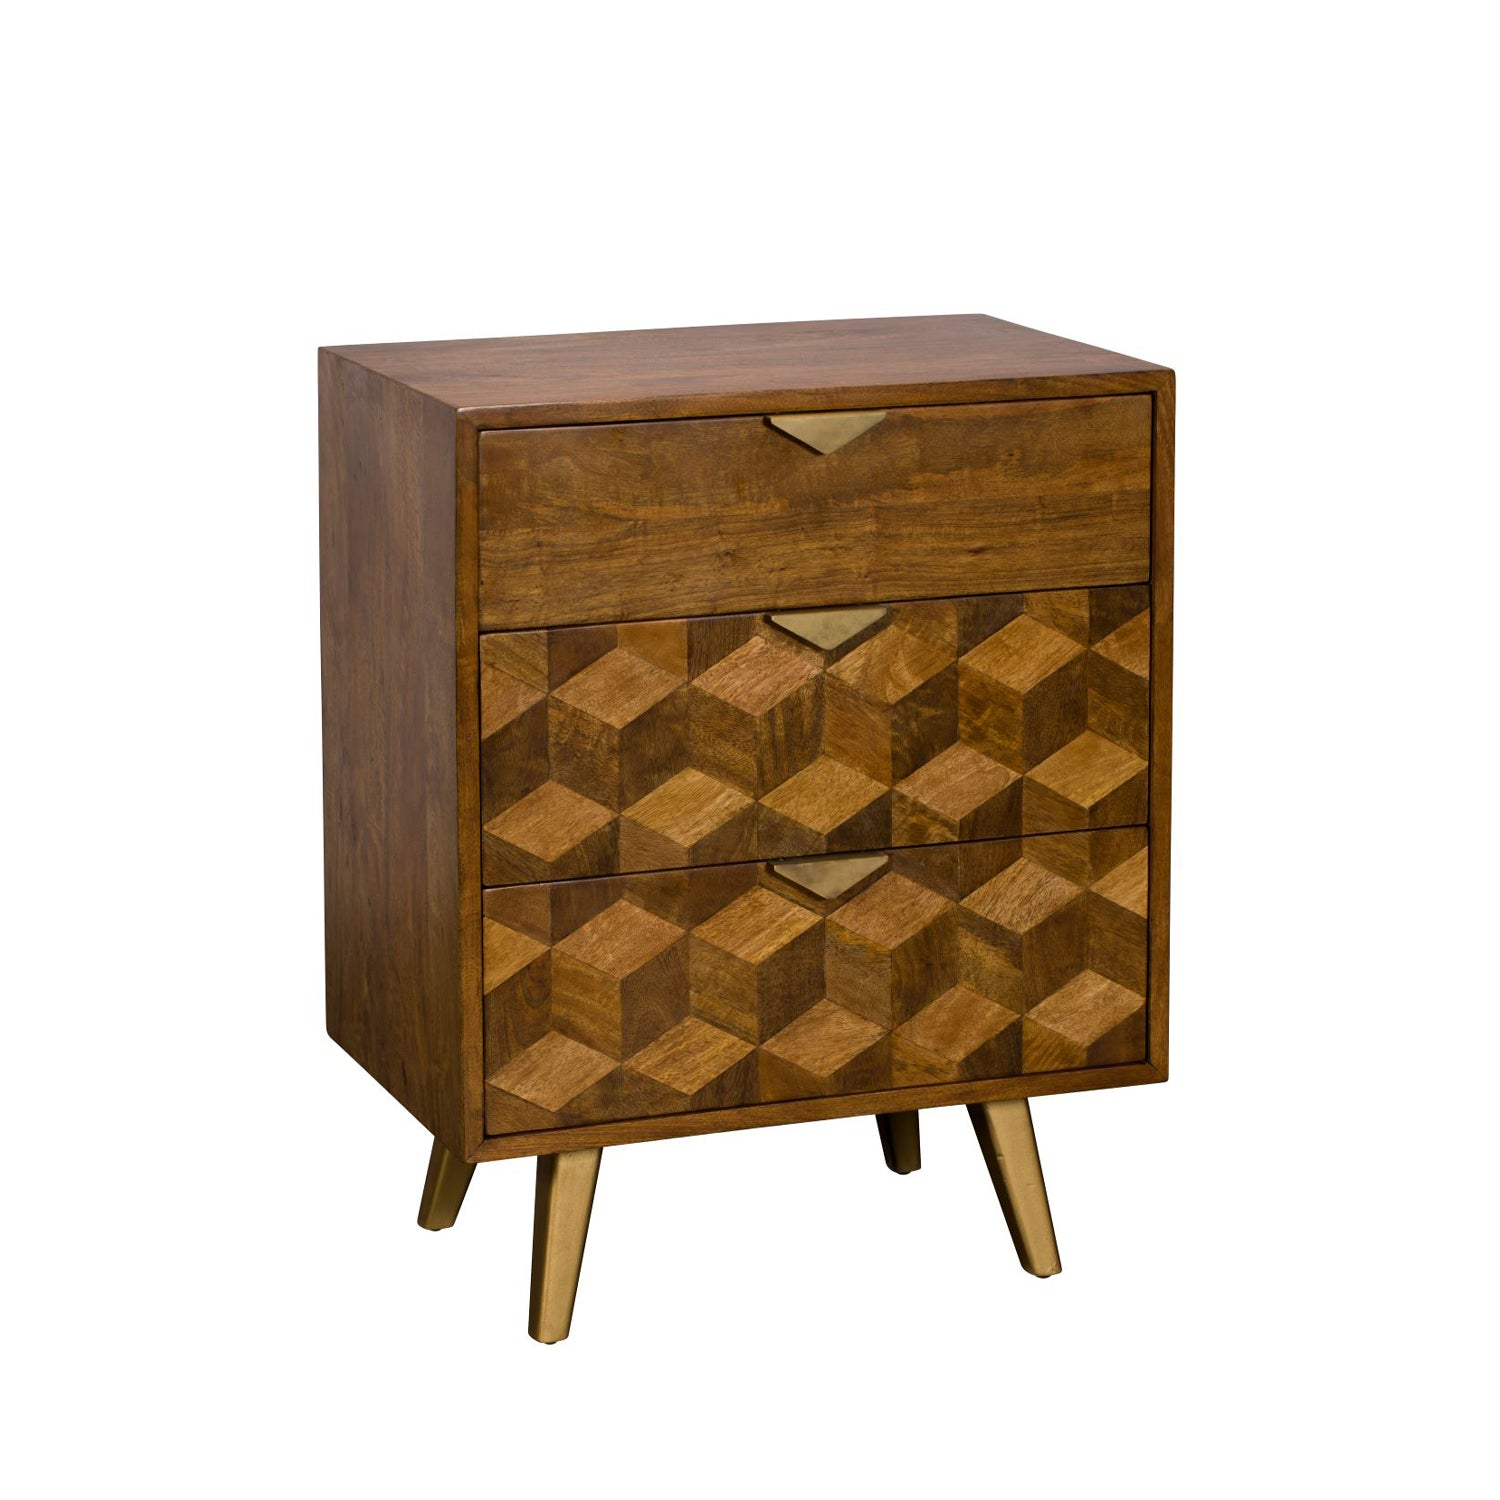 Mayfair Chest of Drawers - 3 Drawer